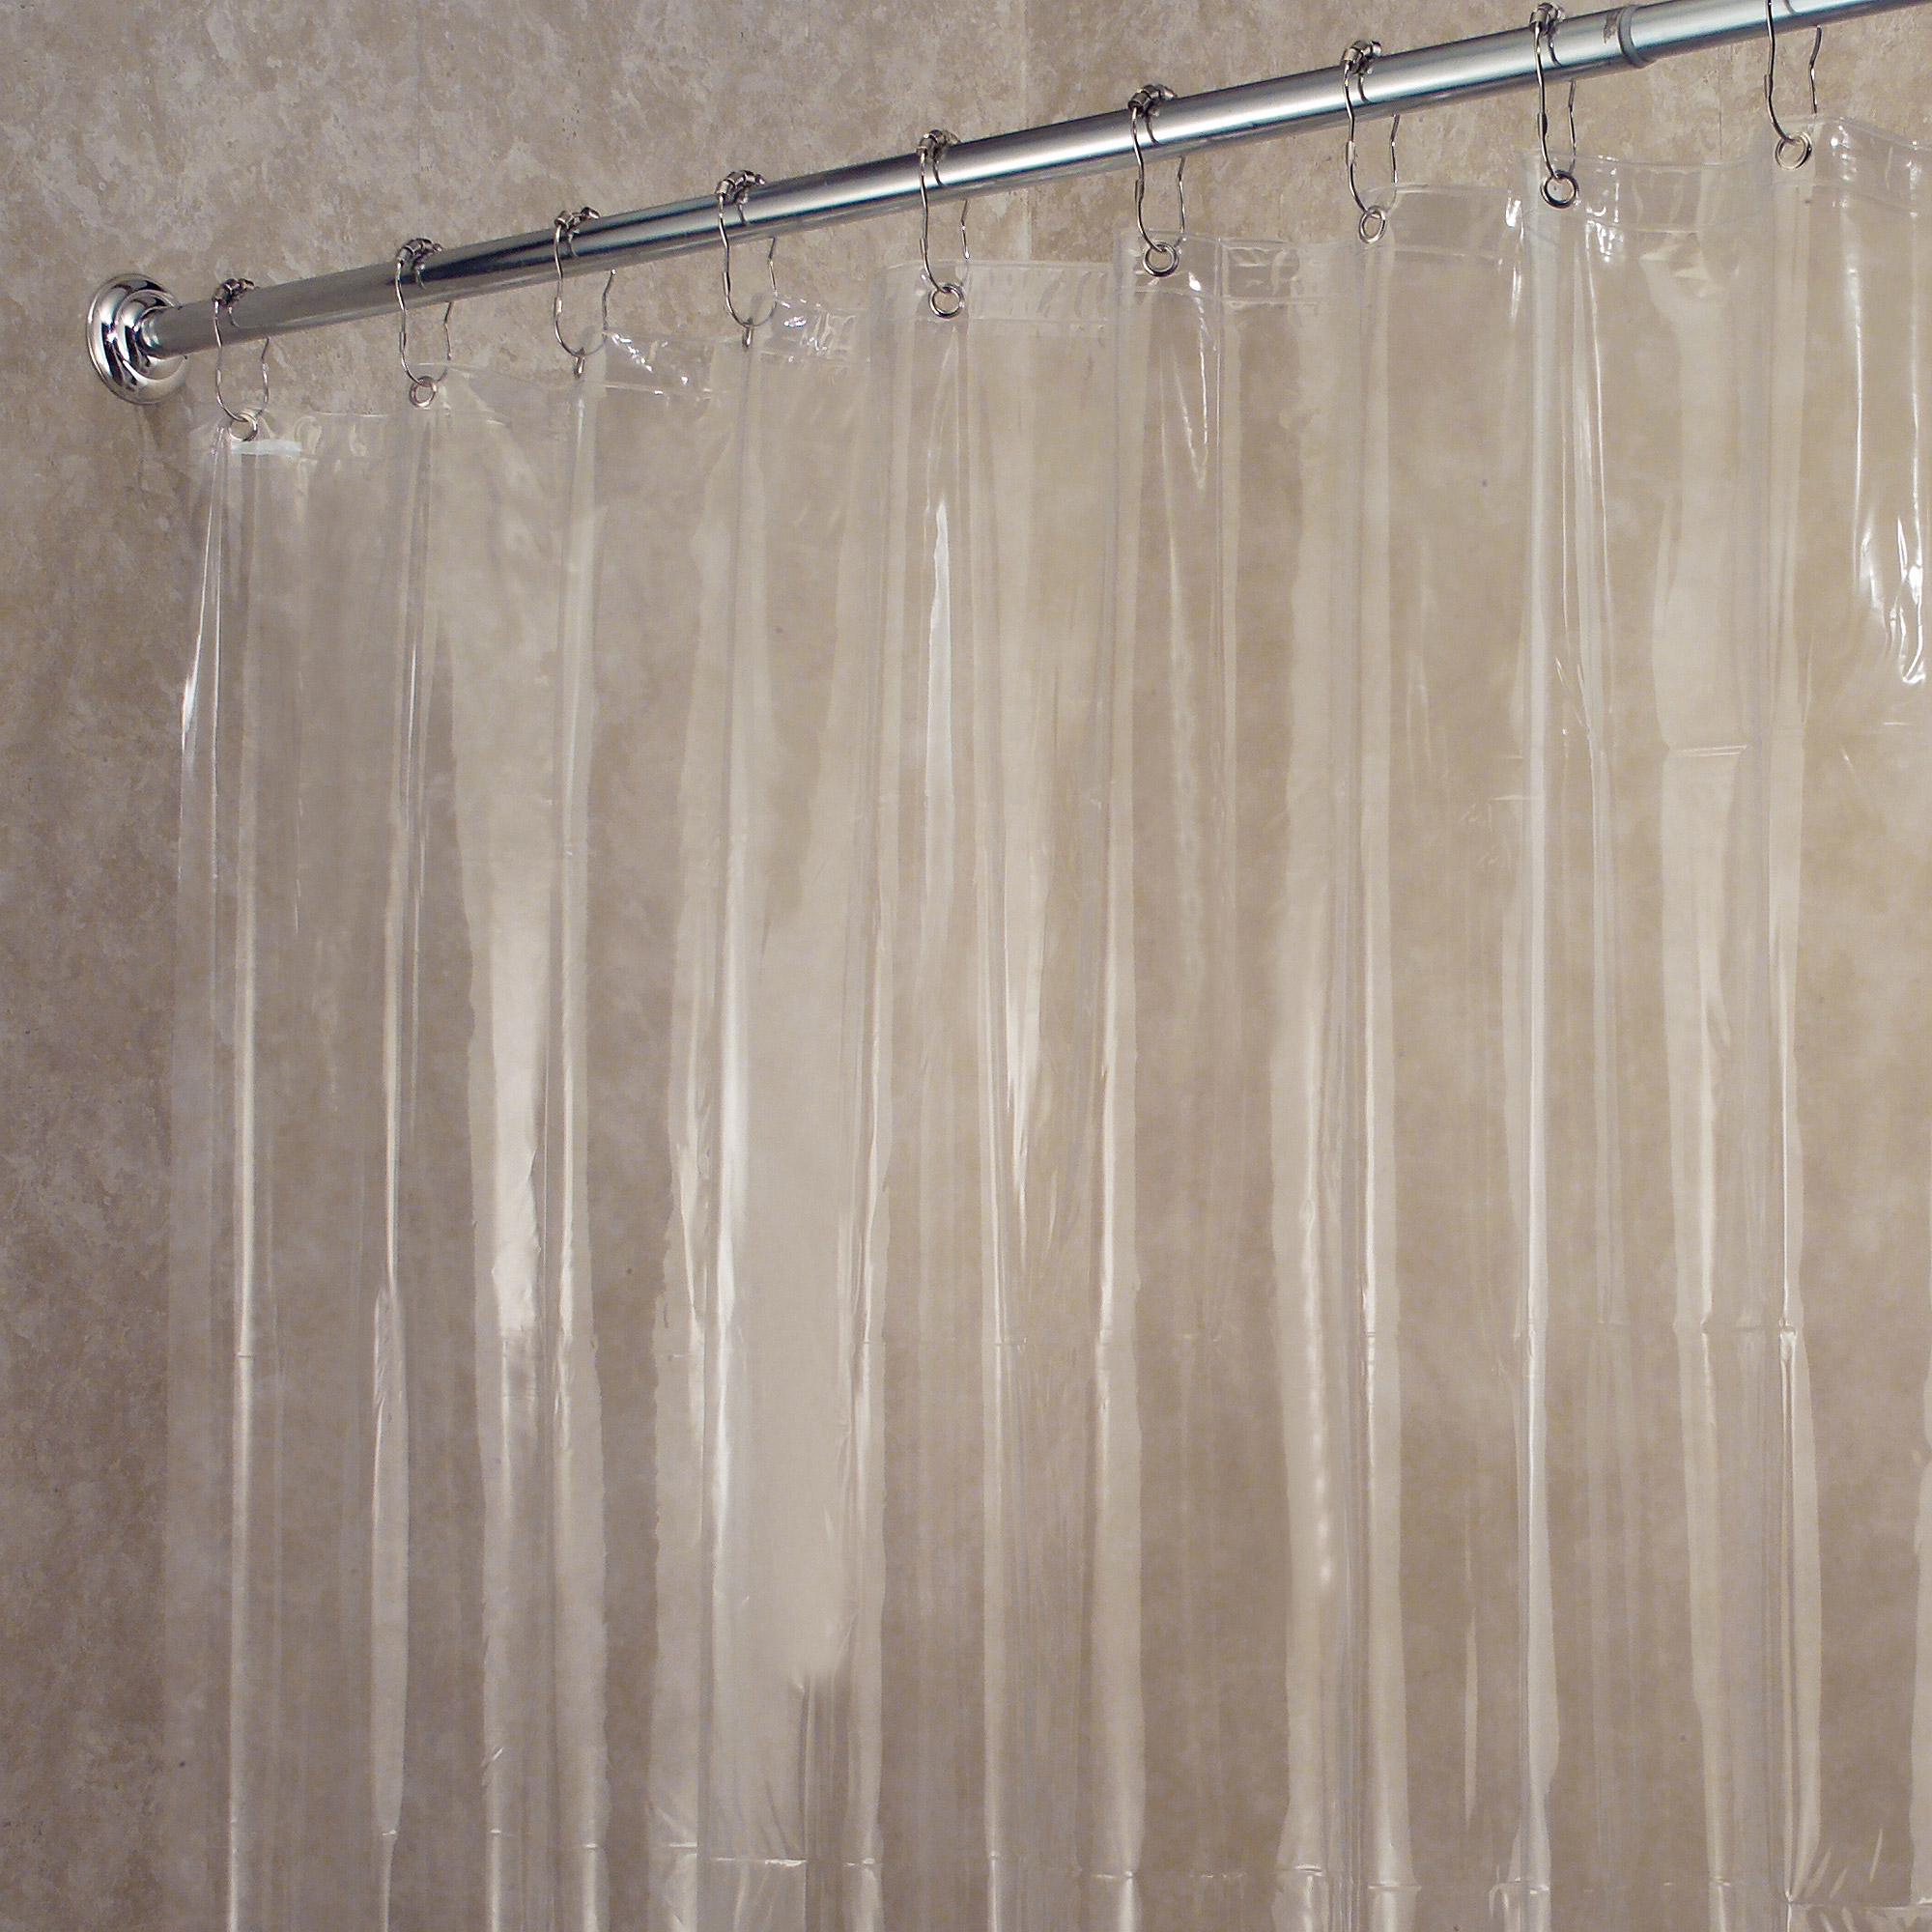 7 foot shower curtain. 7 Foot Drop Shower Curtain Curtains Ideas  Liner Window Drapes